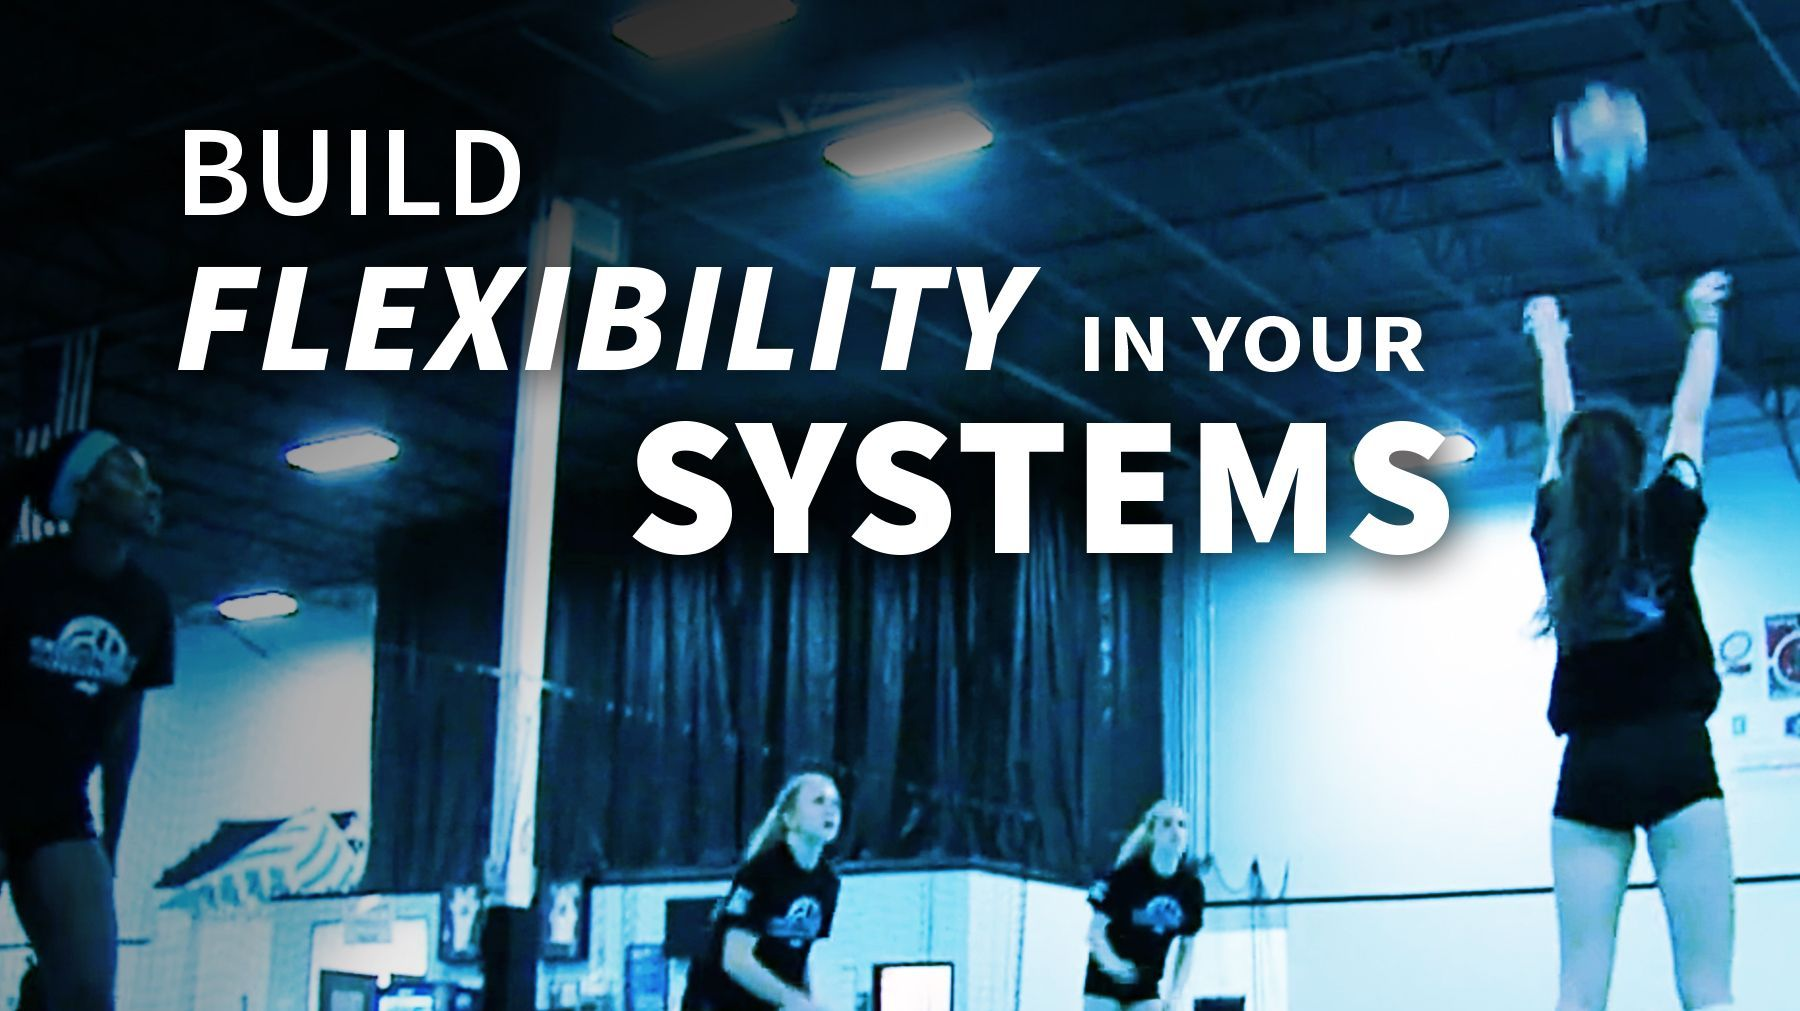 Building Flexibility Into Your Systems The Art Of Coaching Volleyball Coaching Volleyball Volleyball Skills Coaching